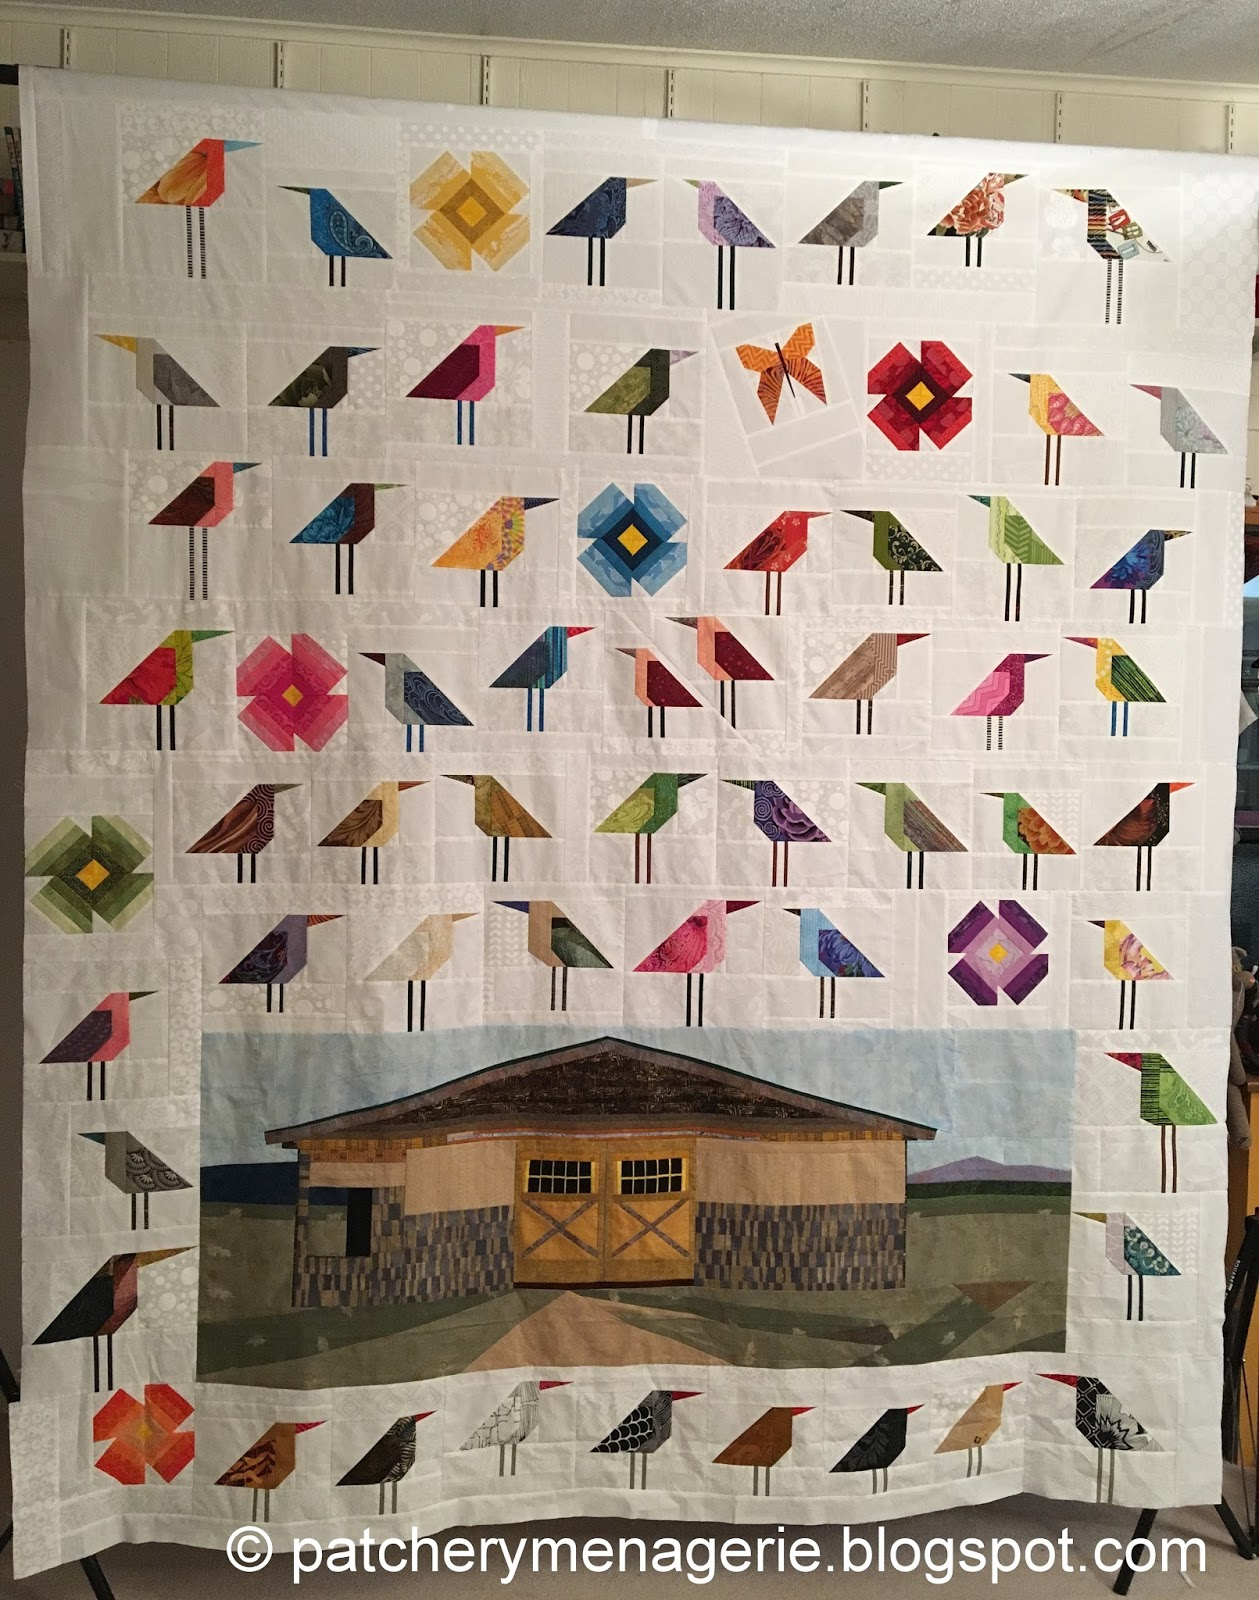 The Patchery Menagerie: The Colorado Quilt Flimsy is Complete! : colorado quilt - Adamdwight.com